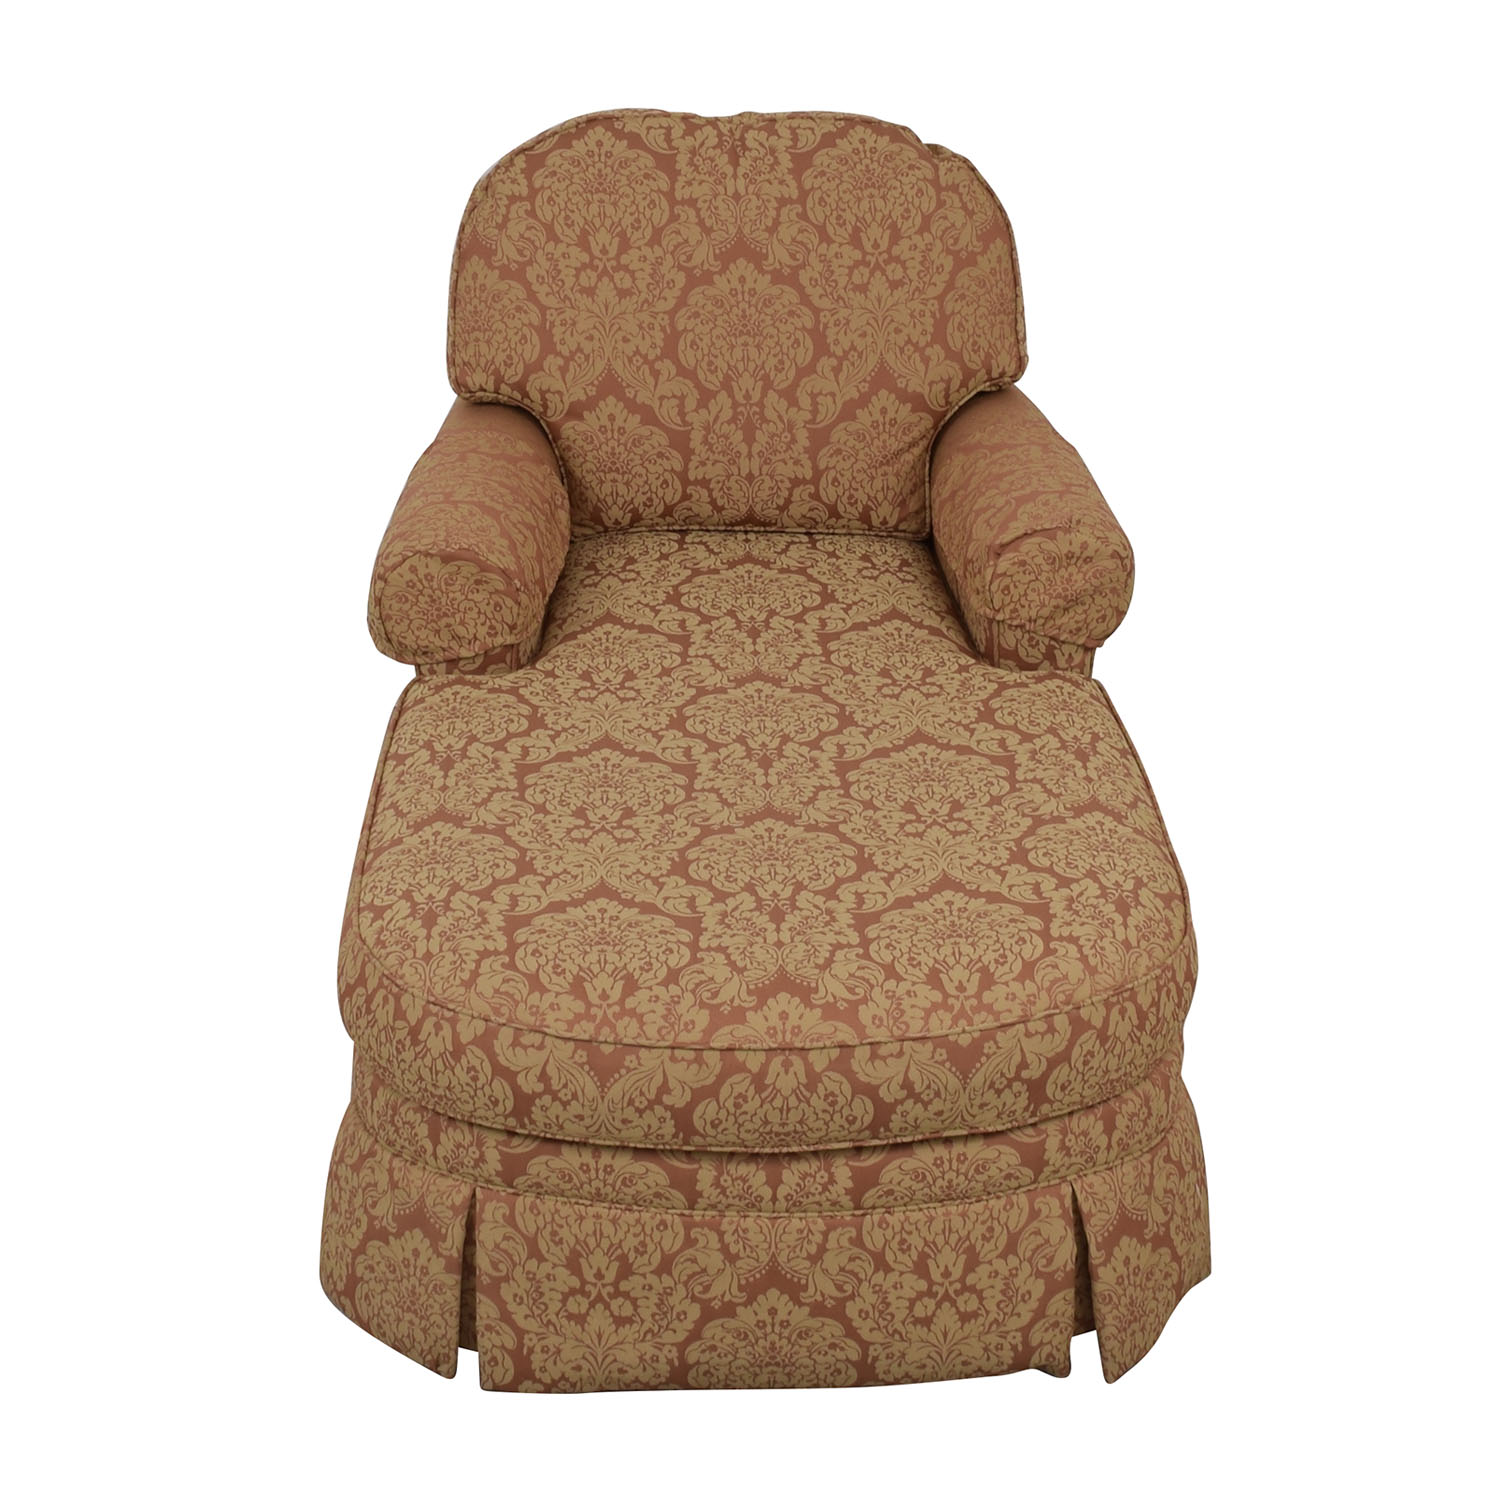 Ethan Allen Ethan Allen Rose and Tan Chaise Lounge price